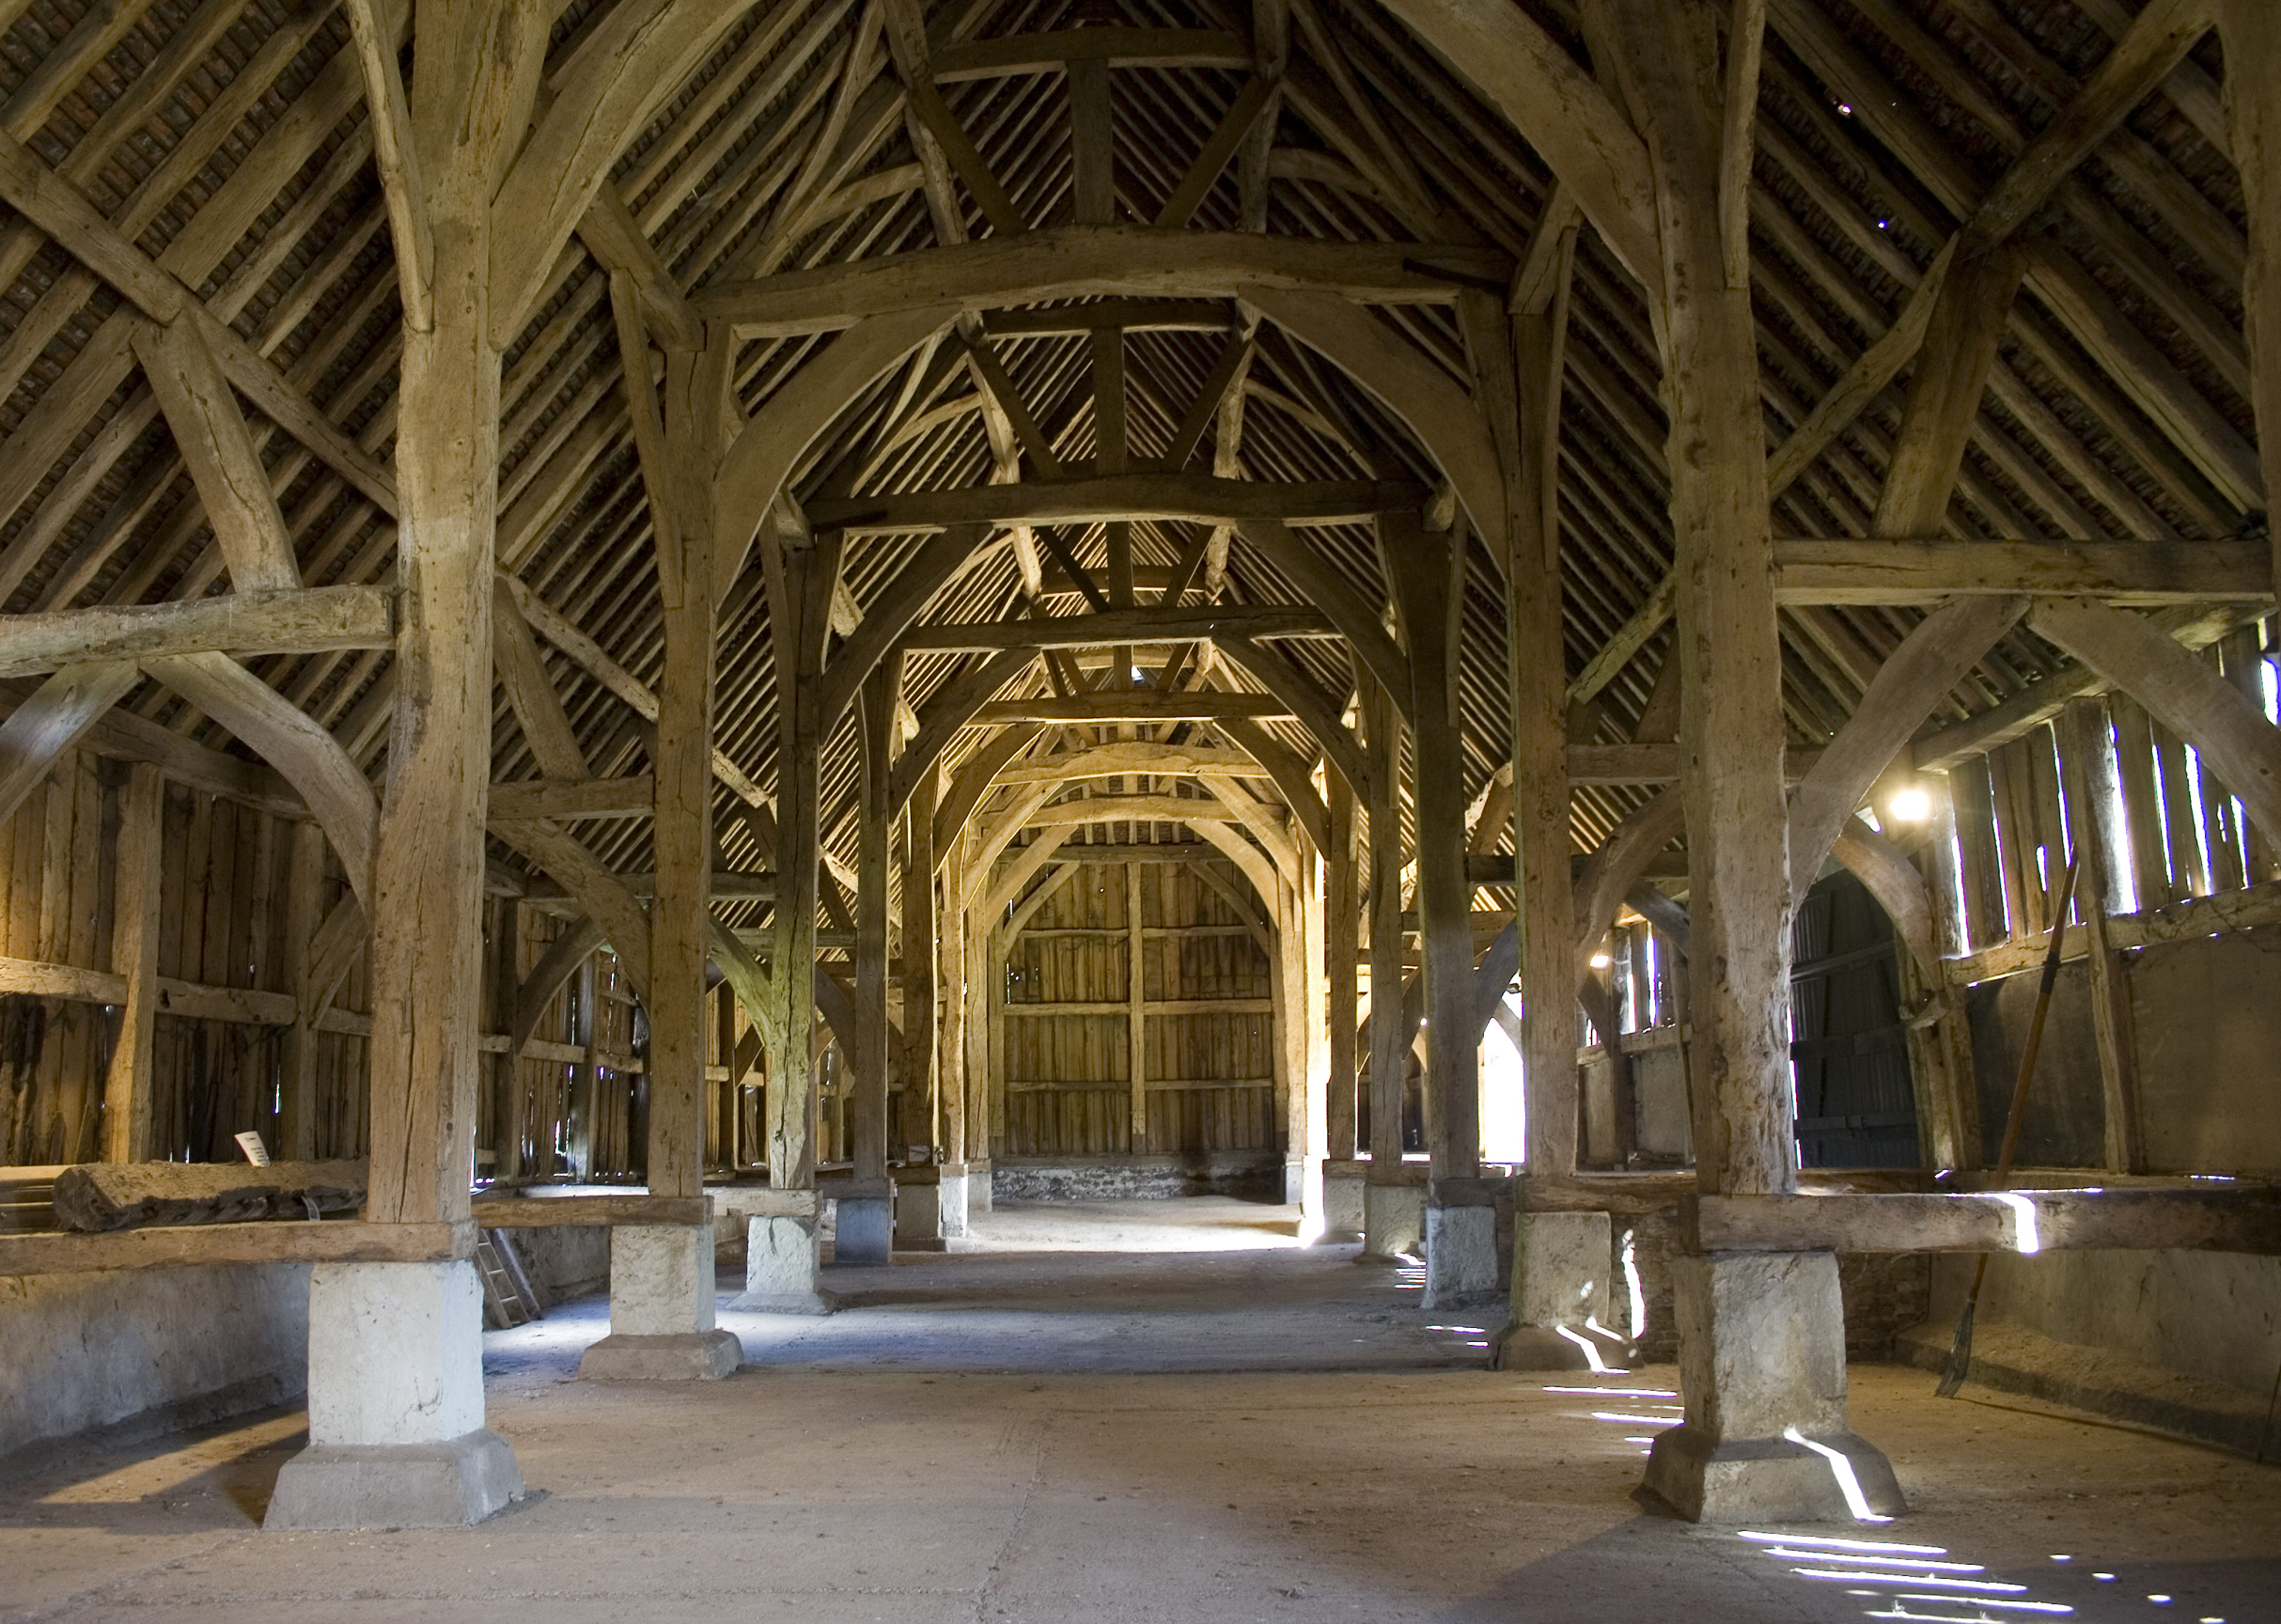 FileHarmondsworth Great Barn Interior Looking Northjpg Wikimedia Commons